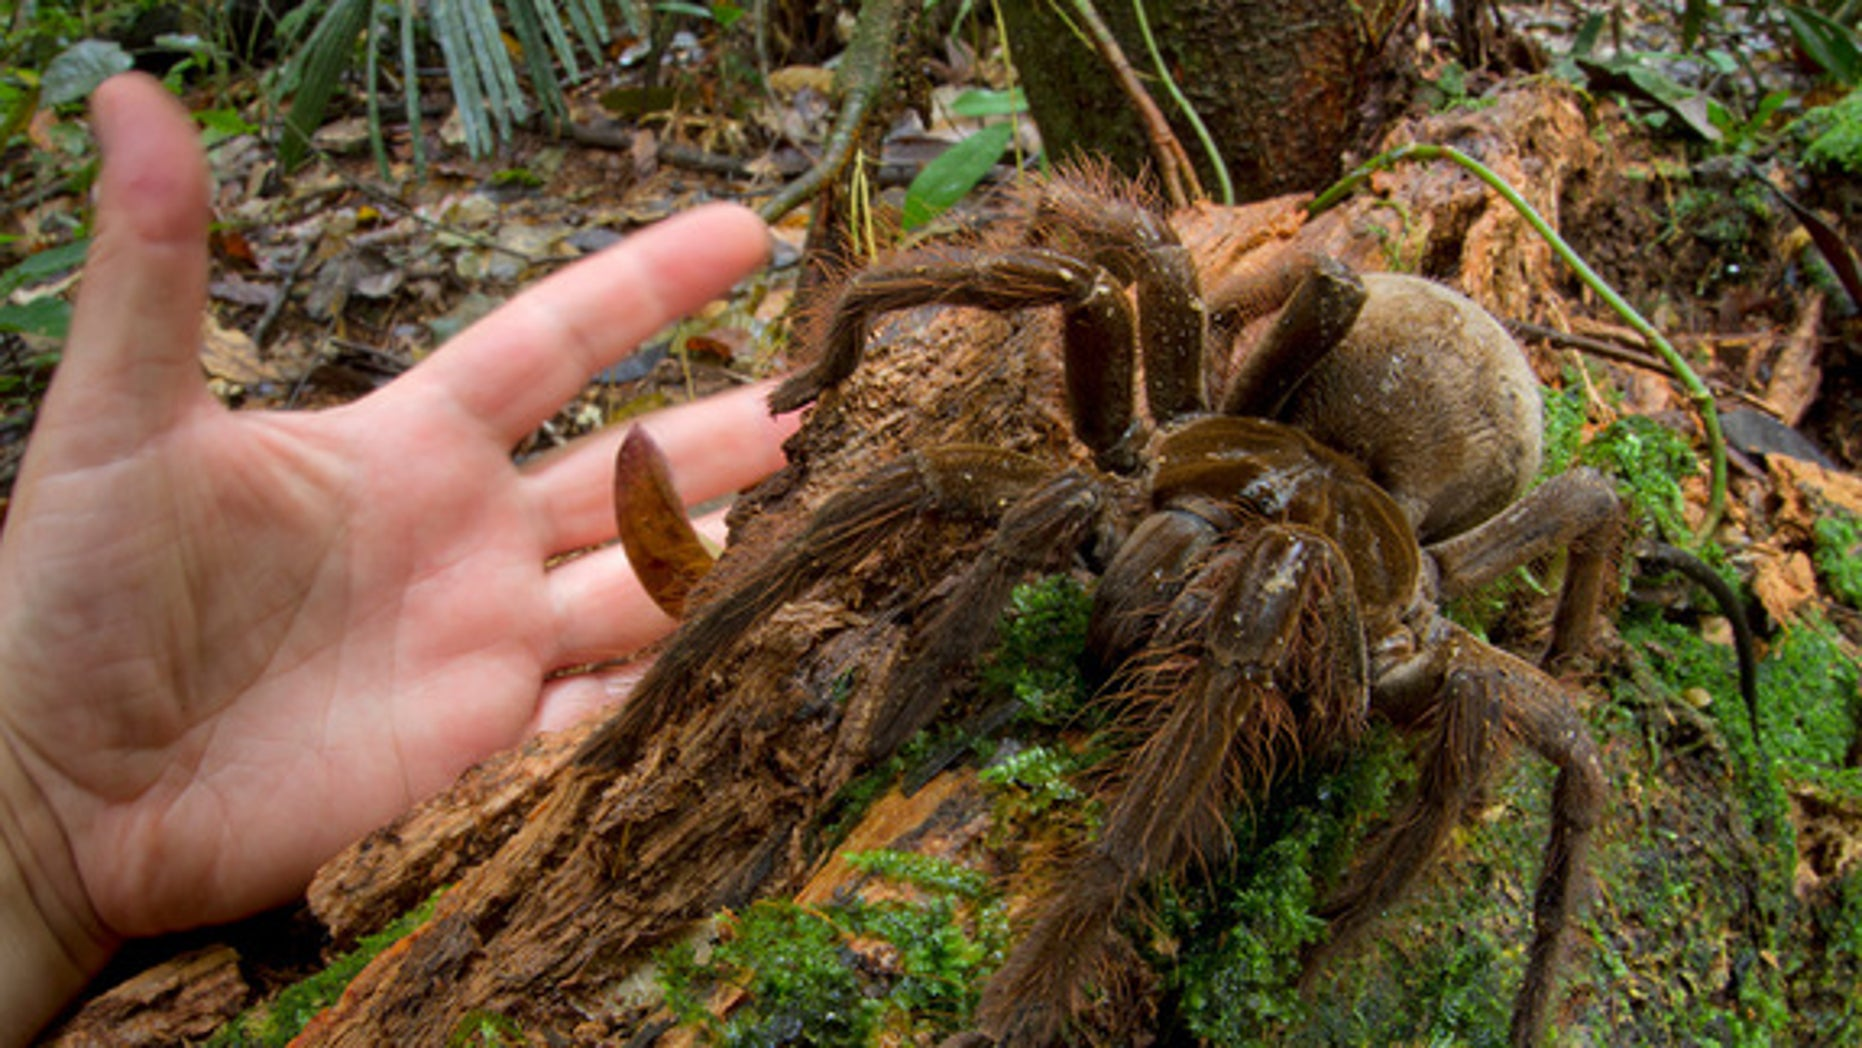 The South American Goliath birdeater (Theraphosa blondi) is the world's largest spider, according to Guinness World Records. Its legs can reach up to one foot and it can weight up to 6 oz..